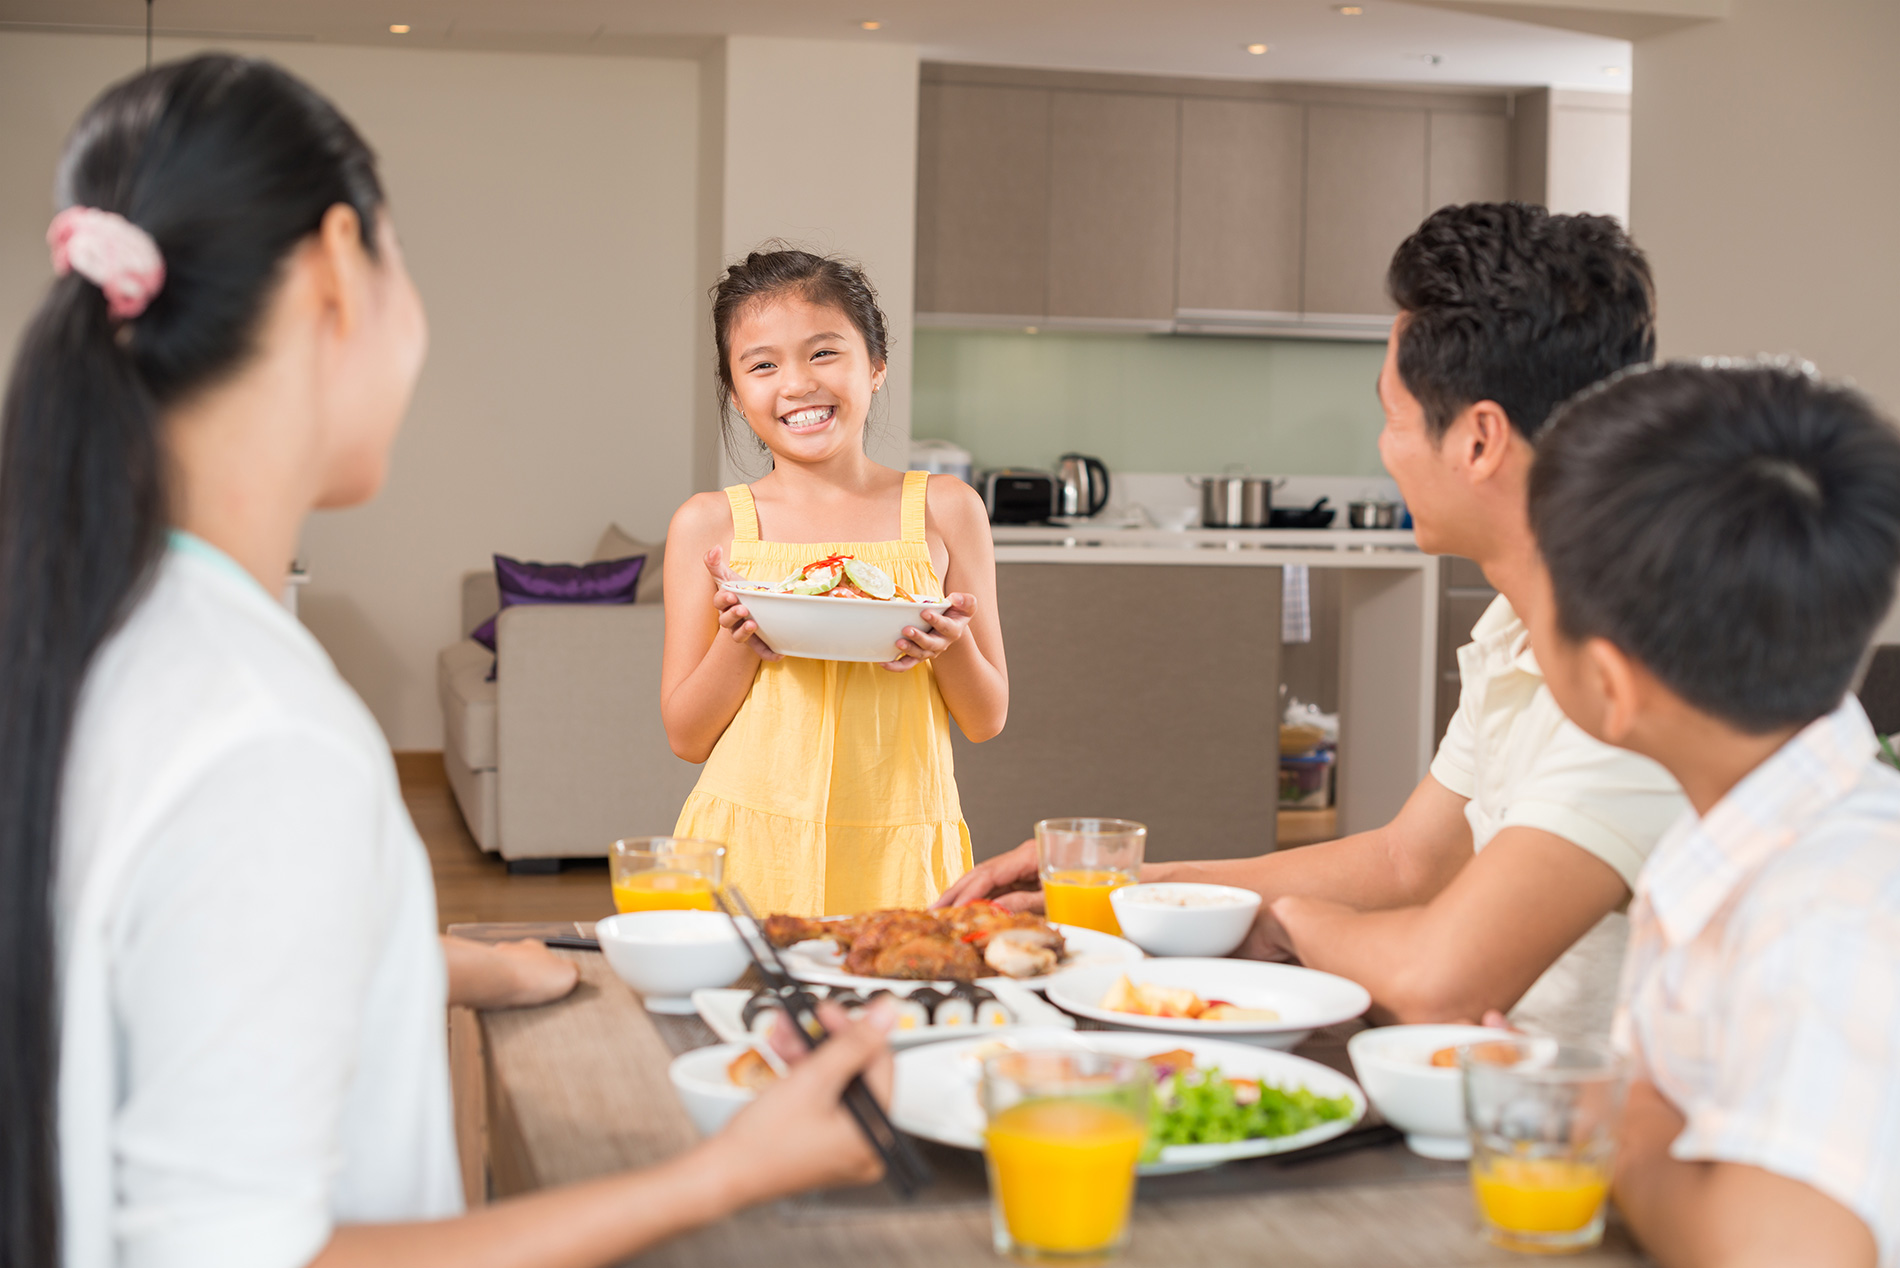 Learn the Benefits of Eating Family Meals Together